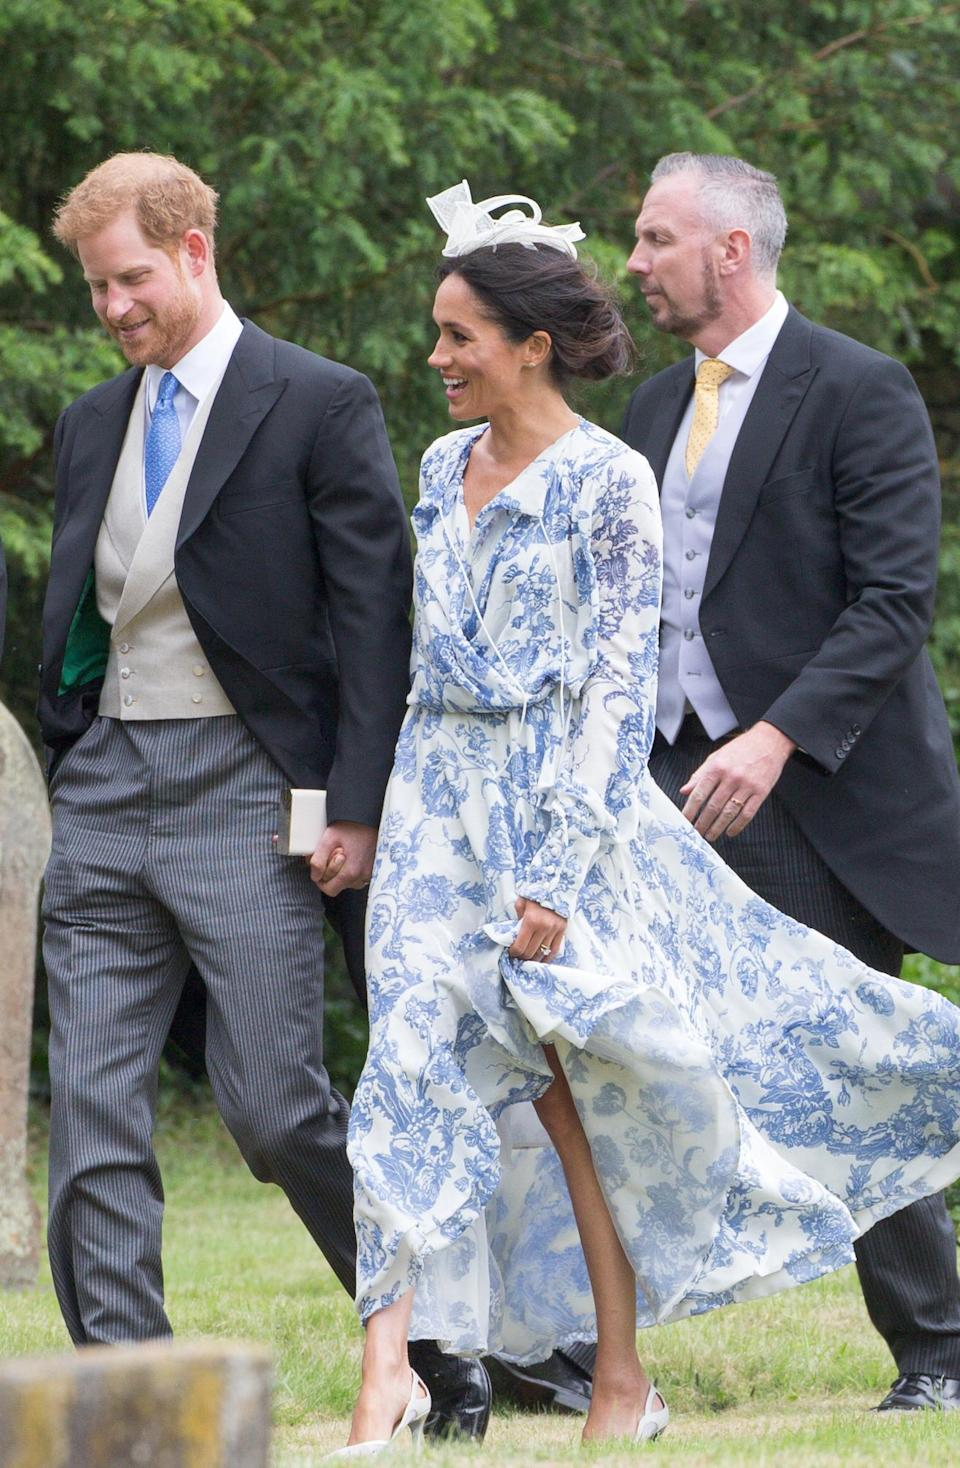 <p>For the wedding of Celia McCorquodale in Lincolnshire, the Duchess wore a relaxed, floral Oscar de la Renta dress with an M&S fascinator. <em>[Photo: Geoff Robinson Photography]</em> </p>